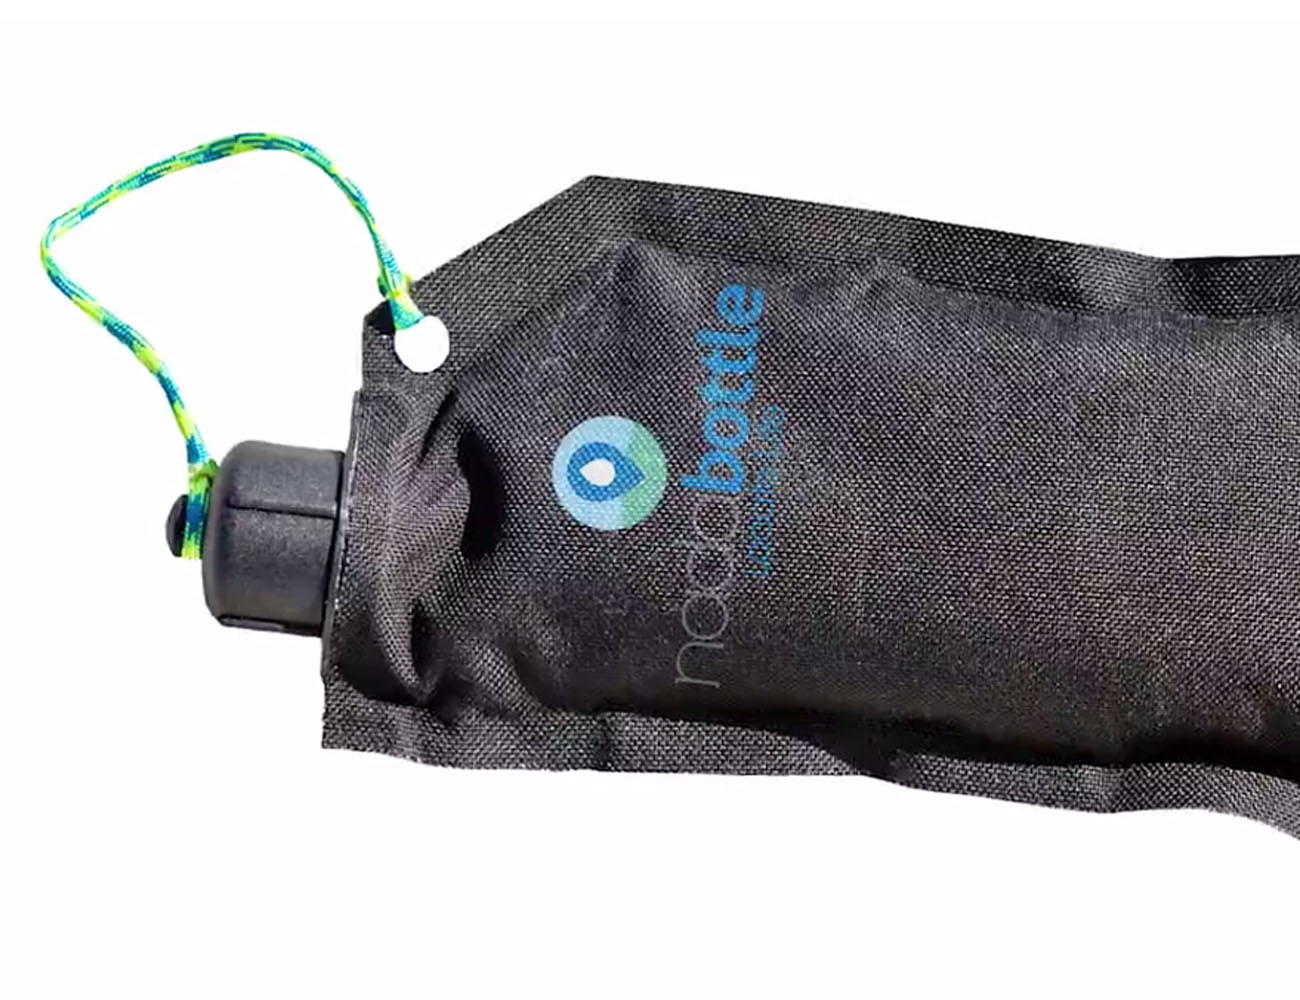 Nada Bottle : A Collapsible Water Bottle With A Purpose